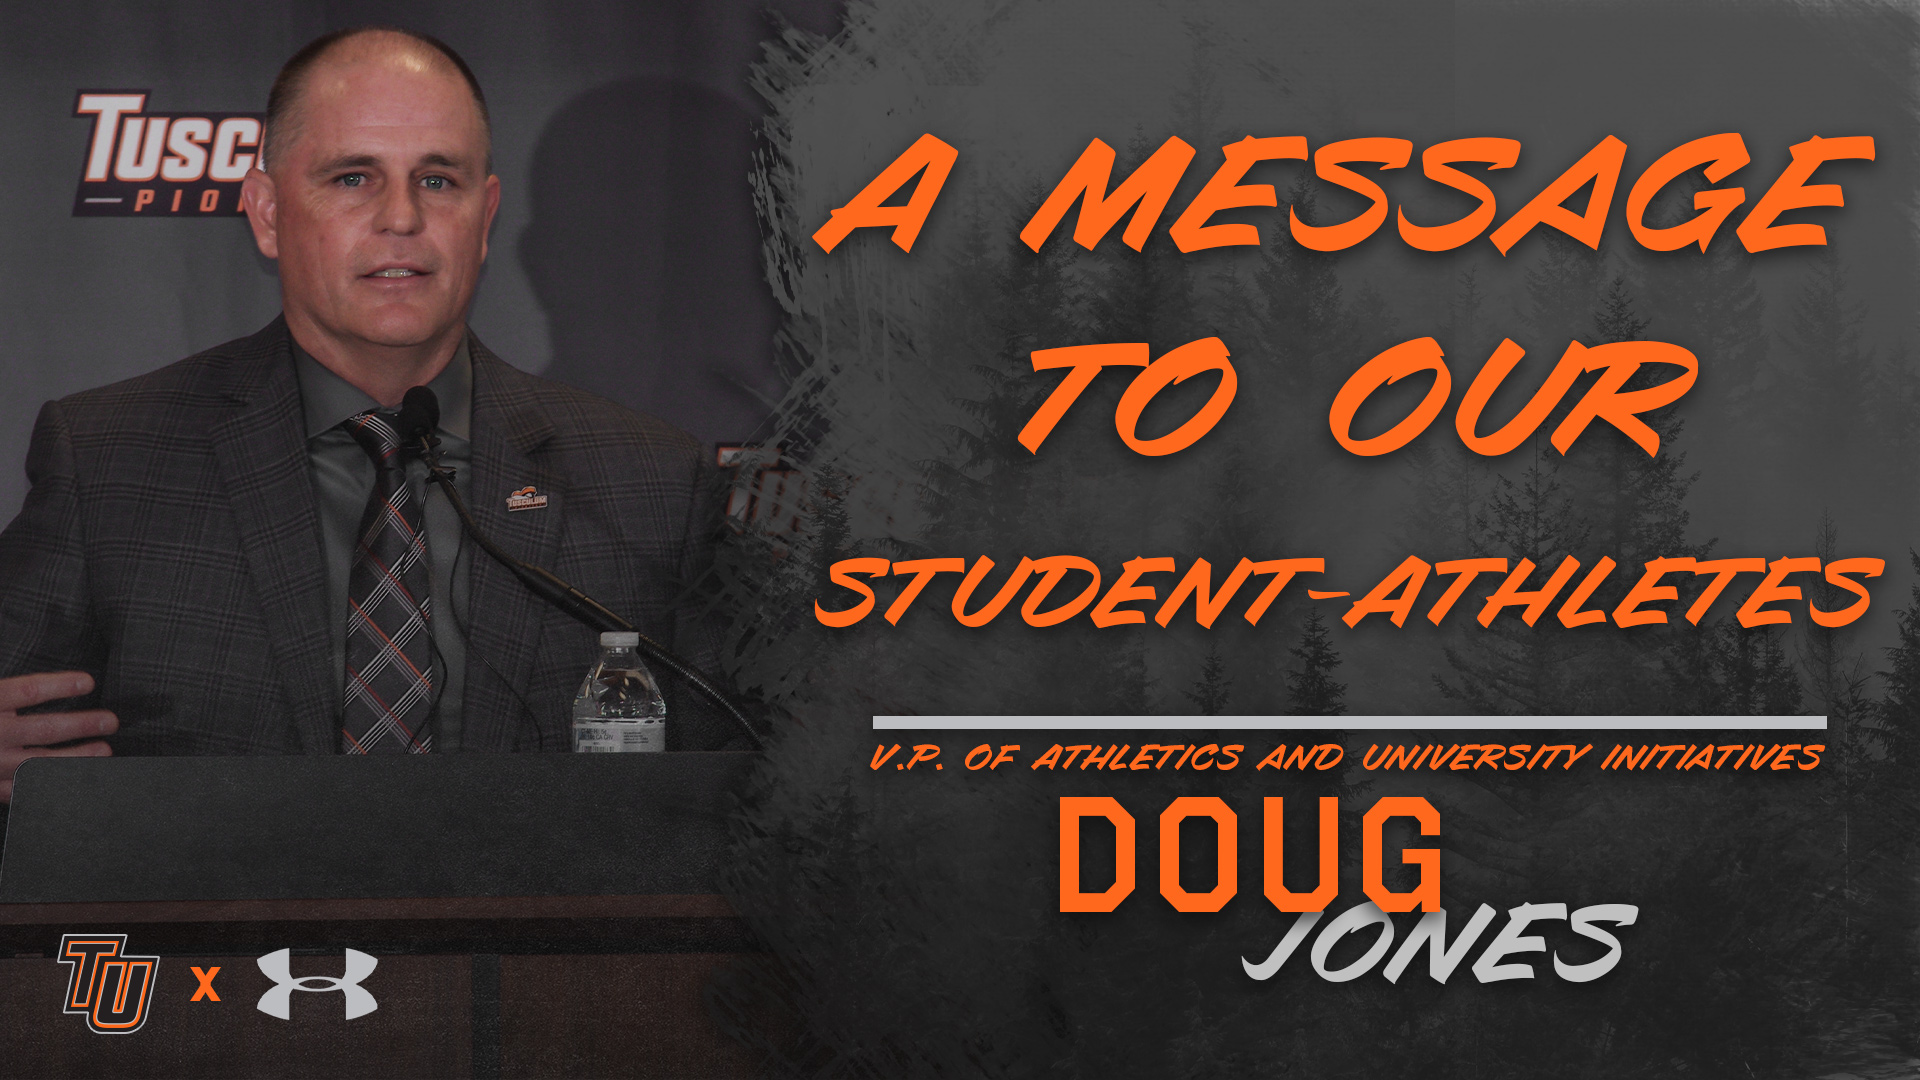 A message to student-athletes from VP of Athletics Doug Jones